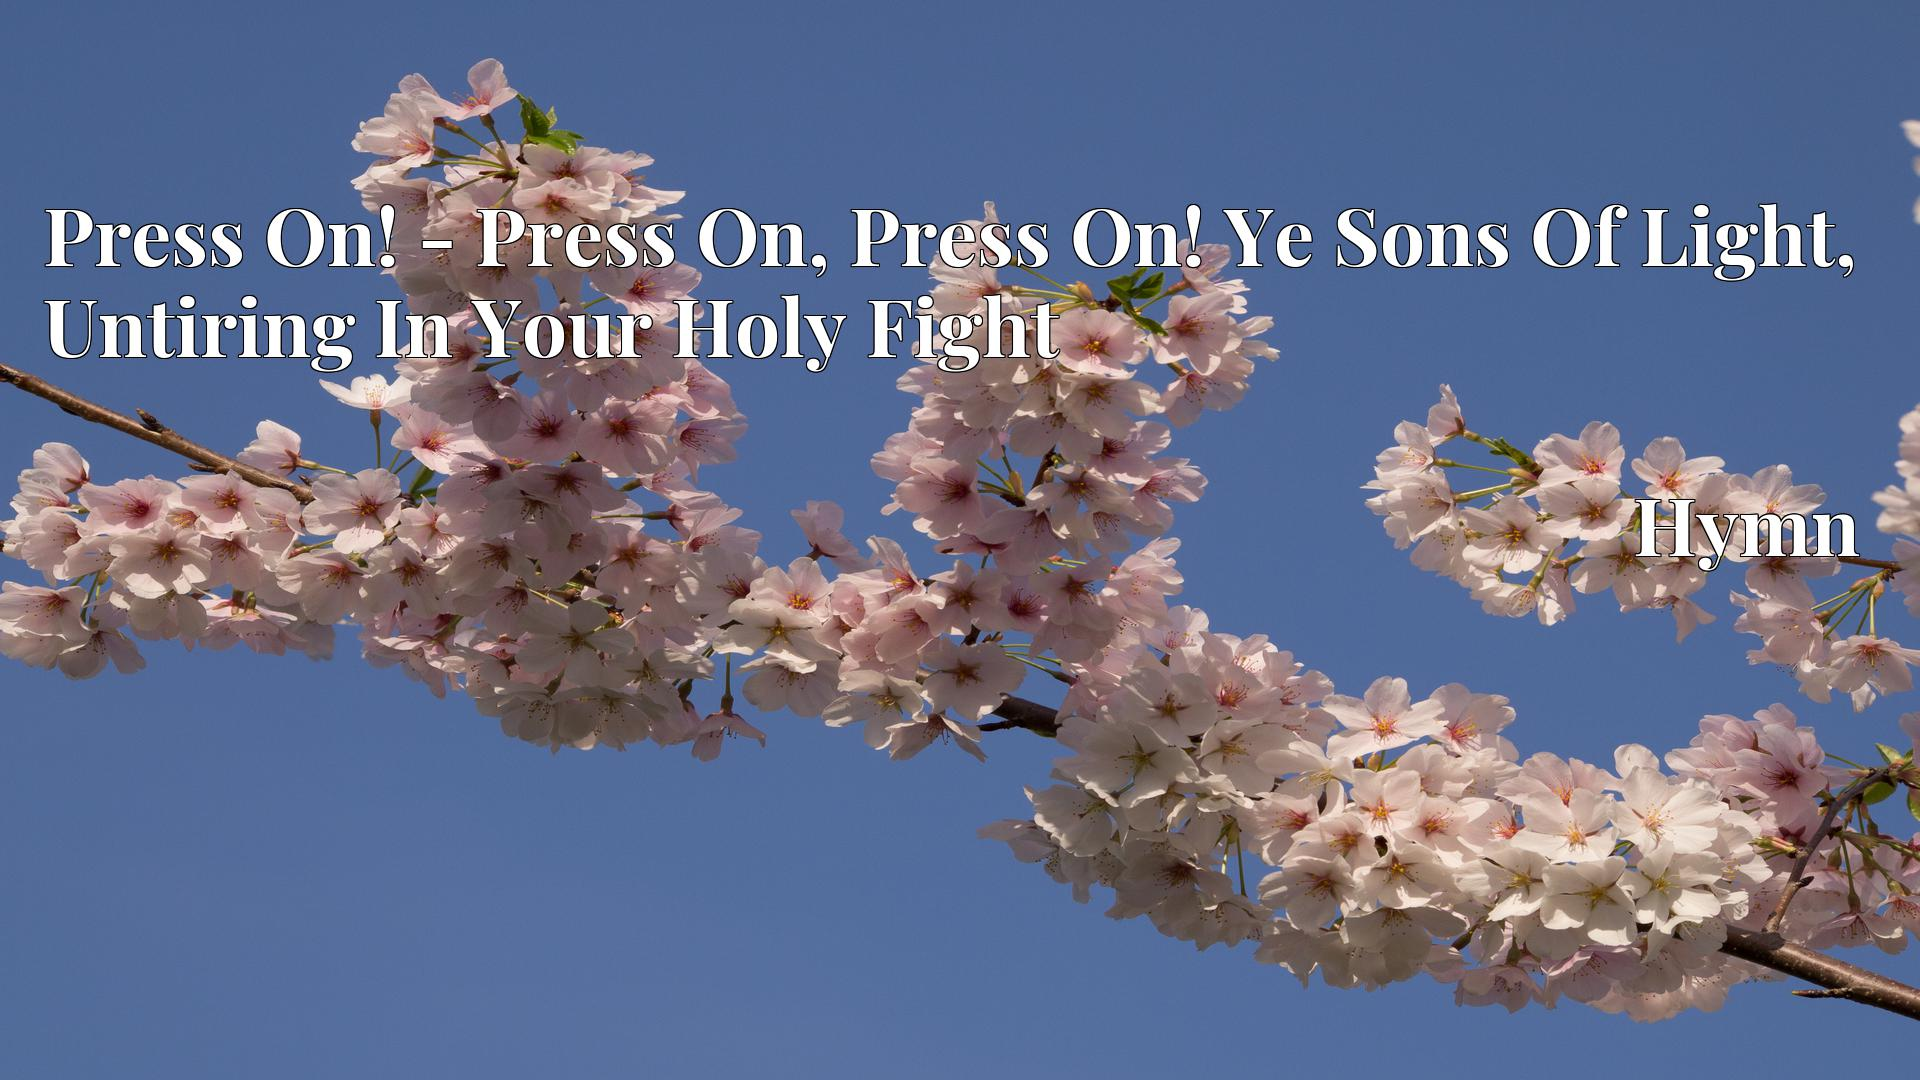 Press On! - Press On, Press On! Ye Sons Of Light, Untiring In Your Holy Fight - Hymn